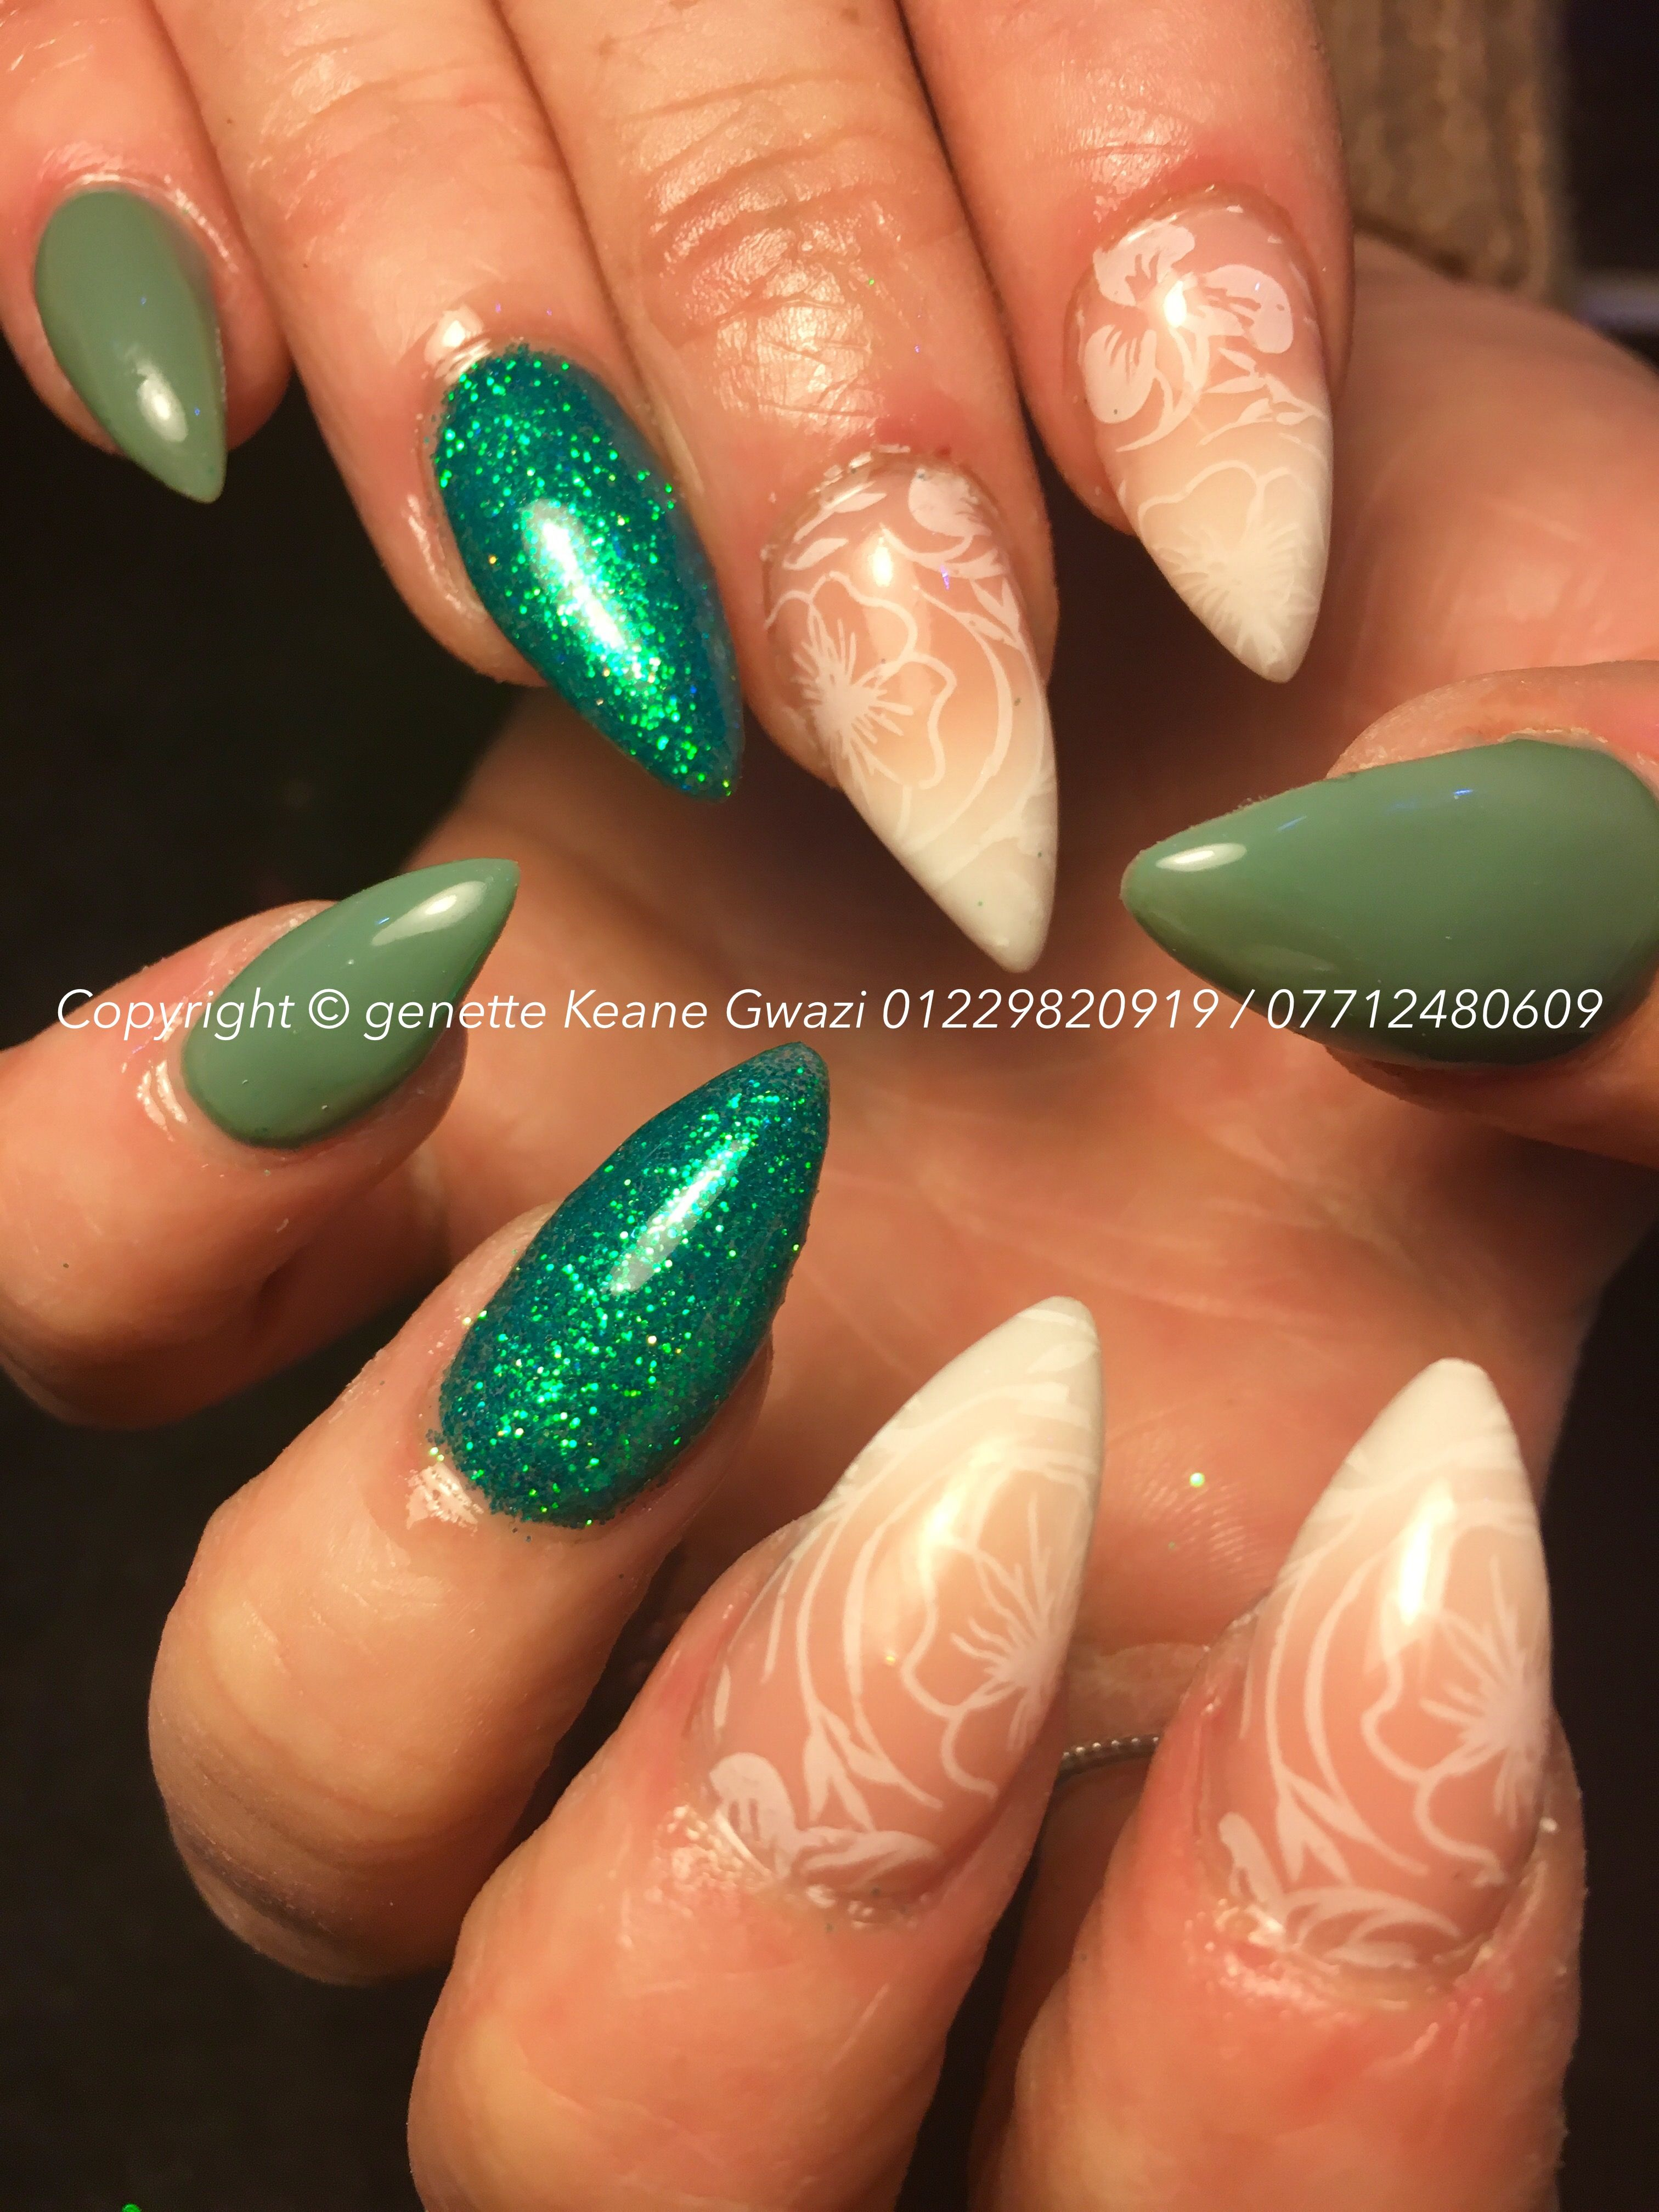 Mermaid Green Acrylic Nails Holographic Glitter Ombre Nail Art